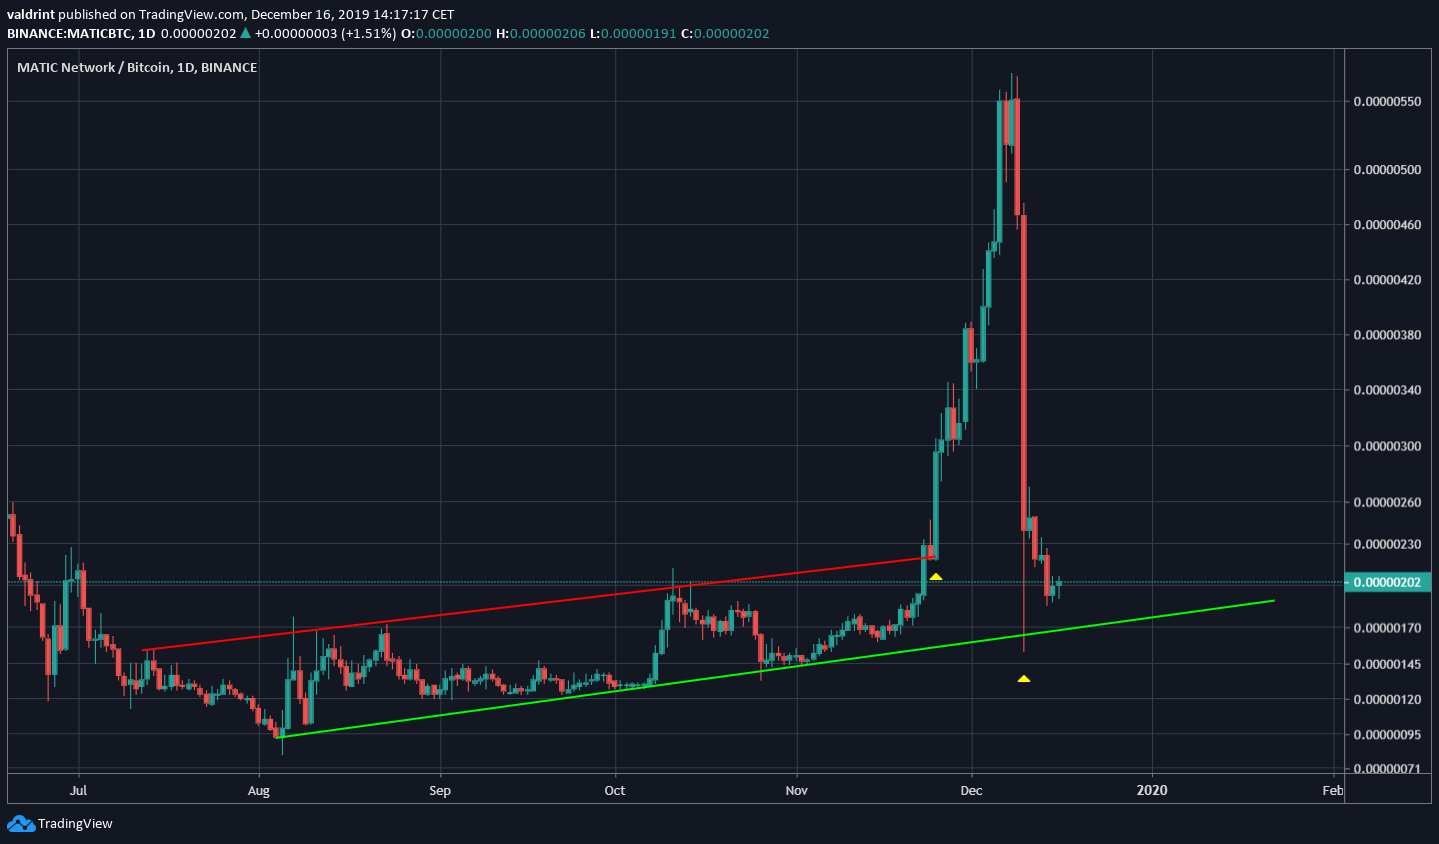 MATIC Ascending Support